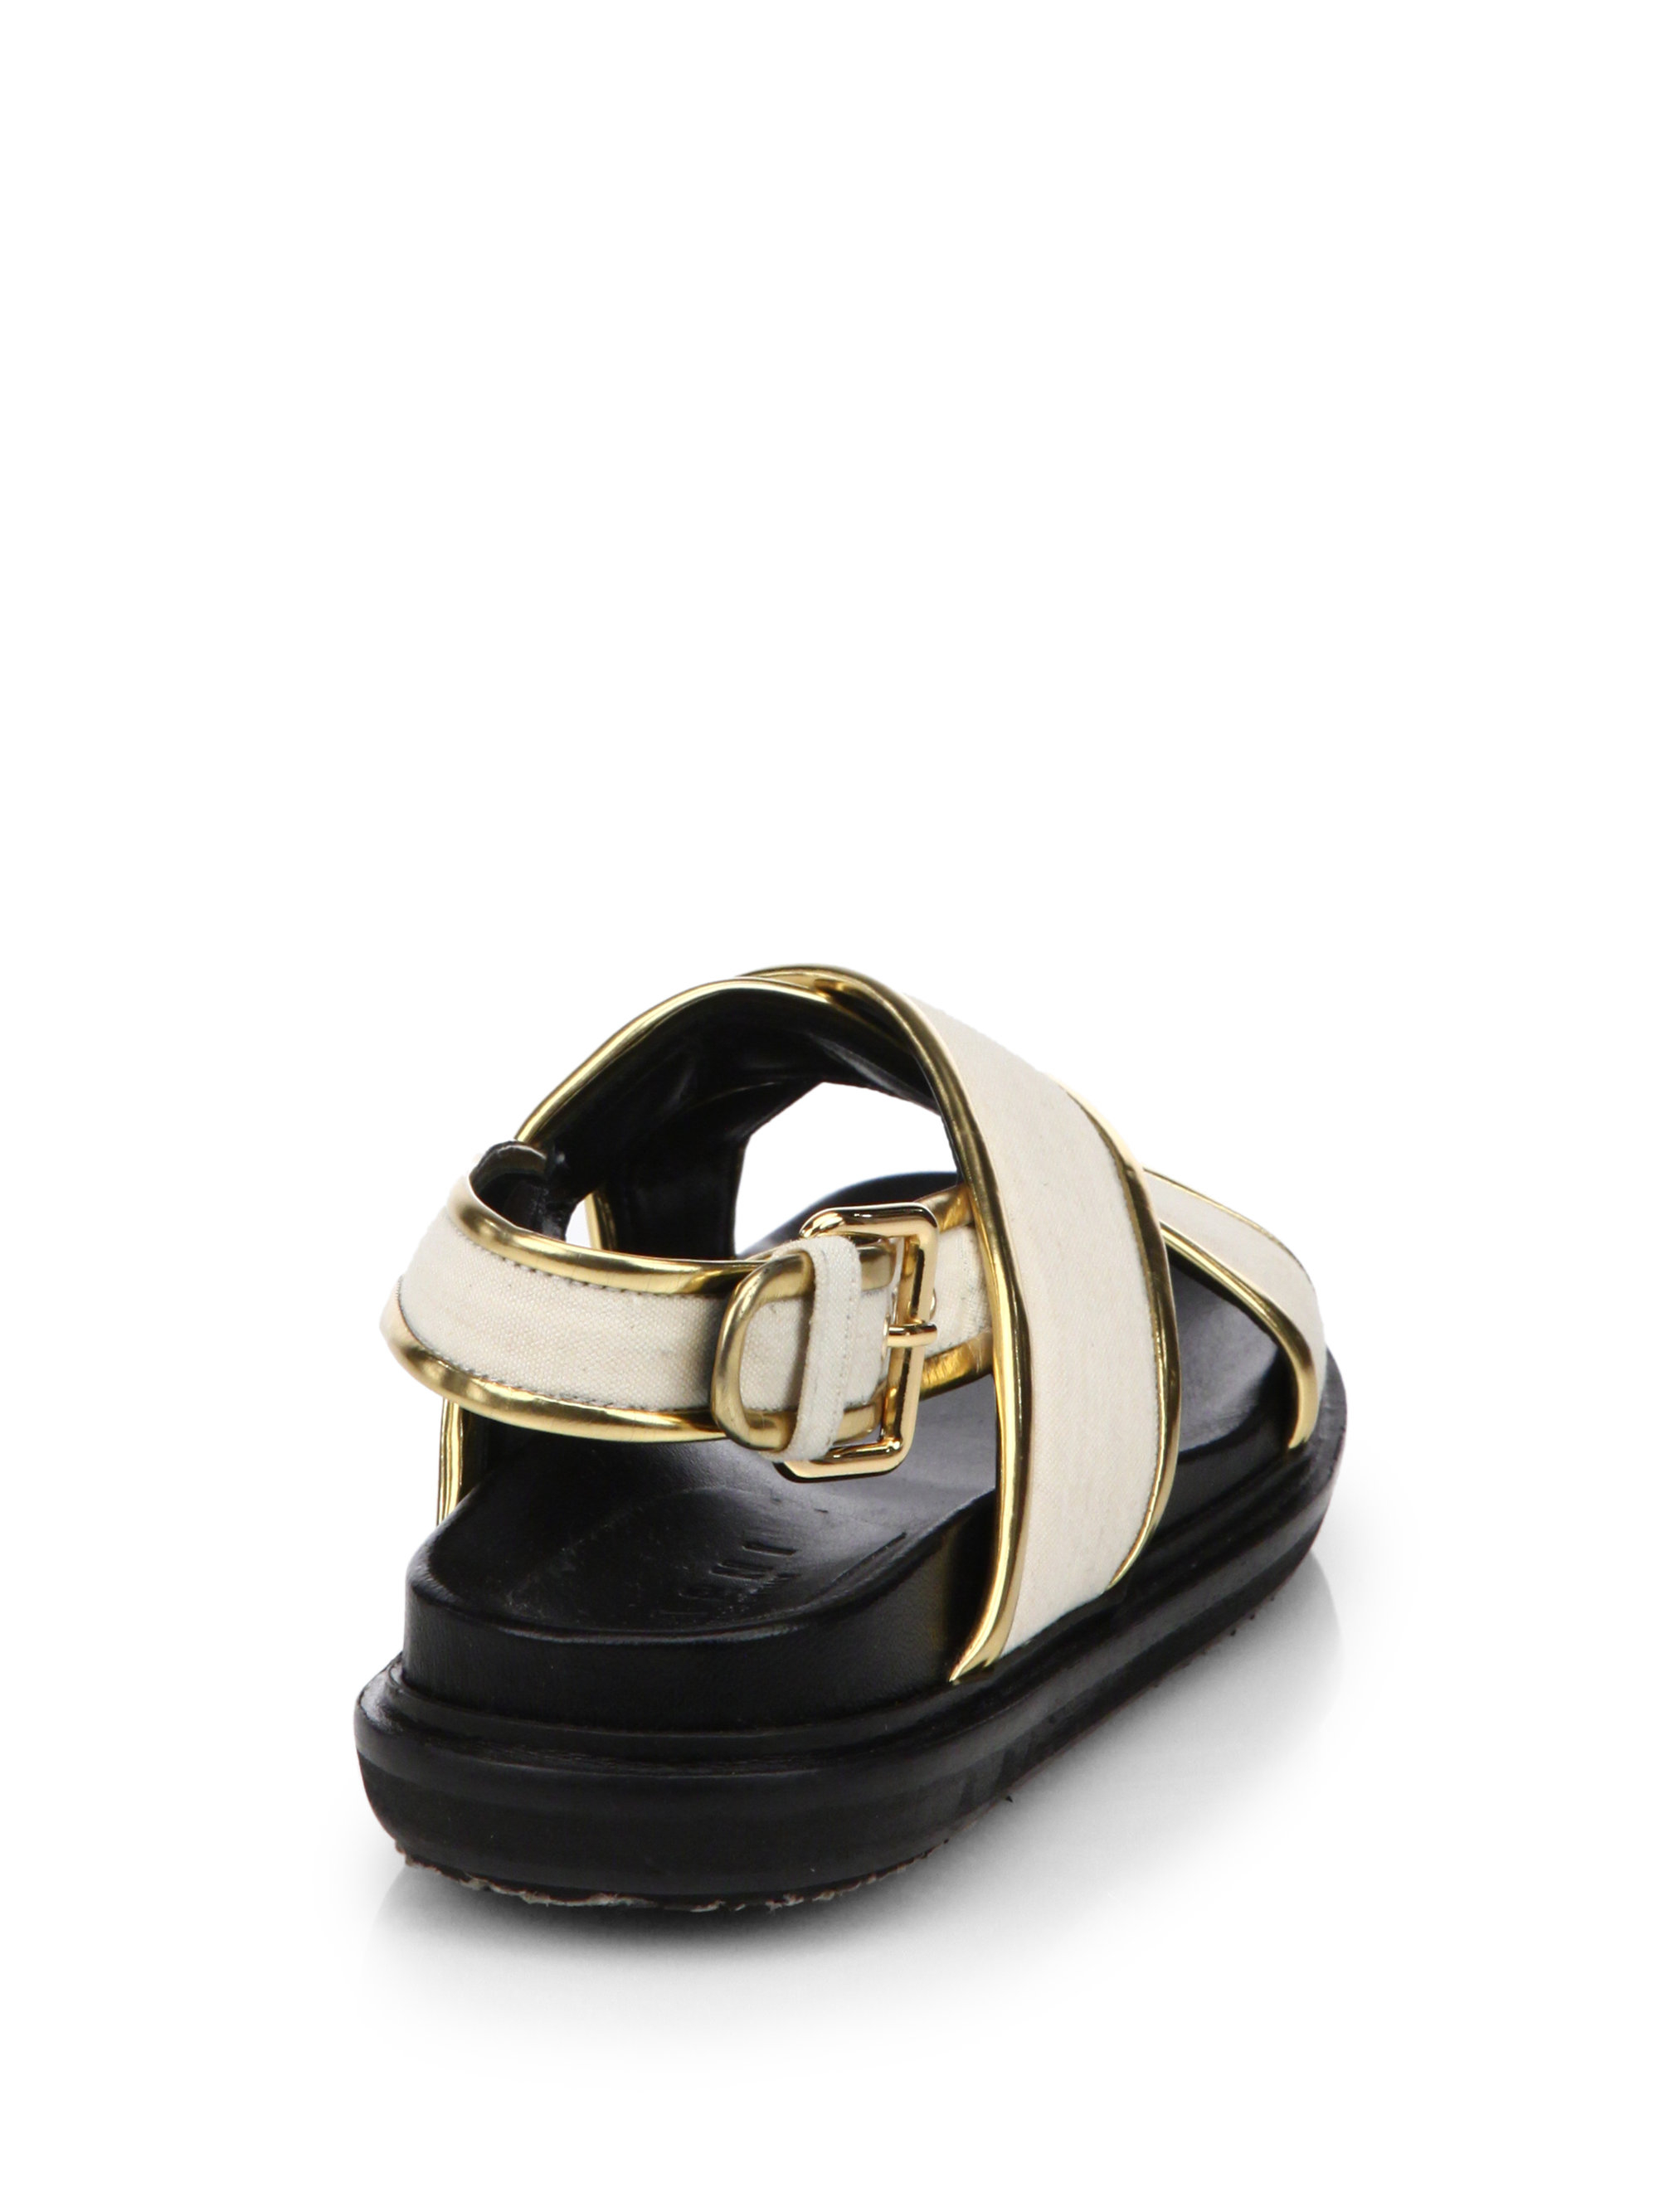 Marni Metallic Leather-Trimmed Sandals free shipping finishline buy cheap outlet store newest buy cheap real discount 100% authentic chfNfe7bY